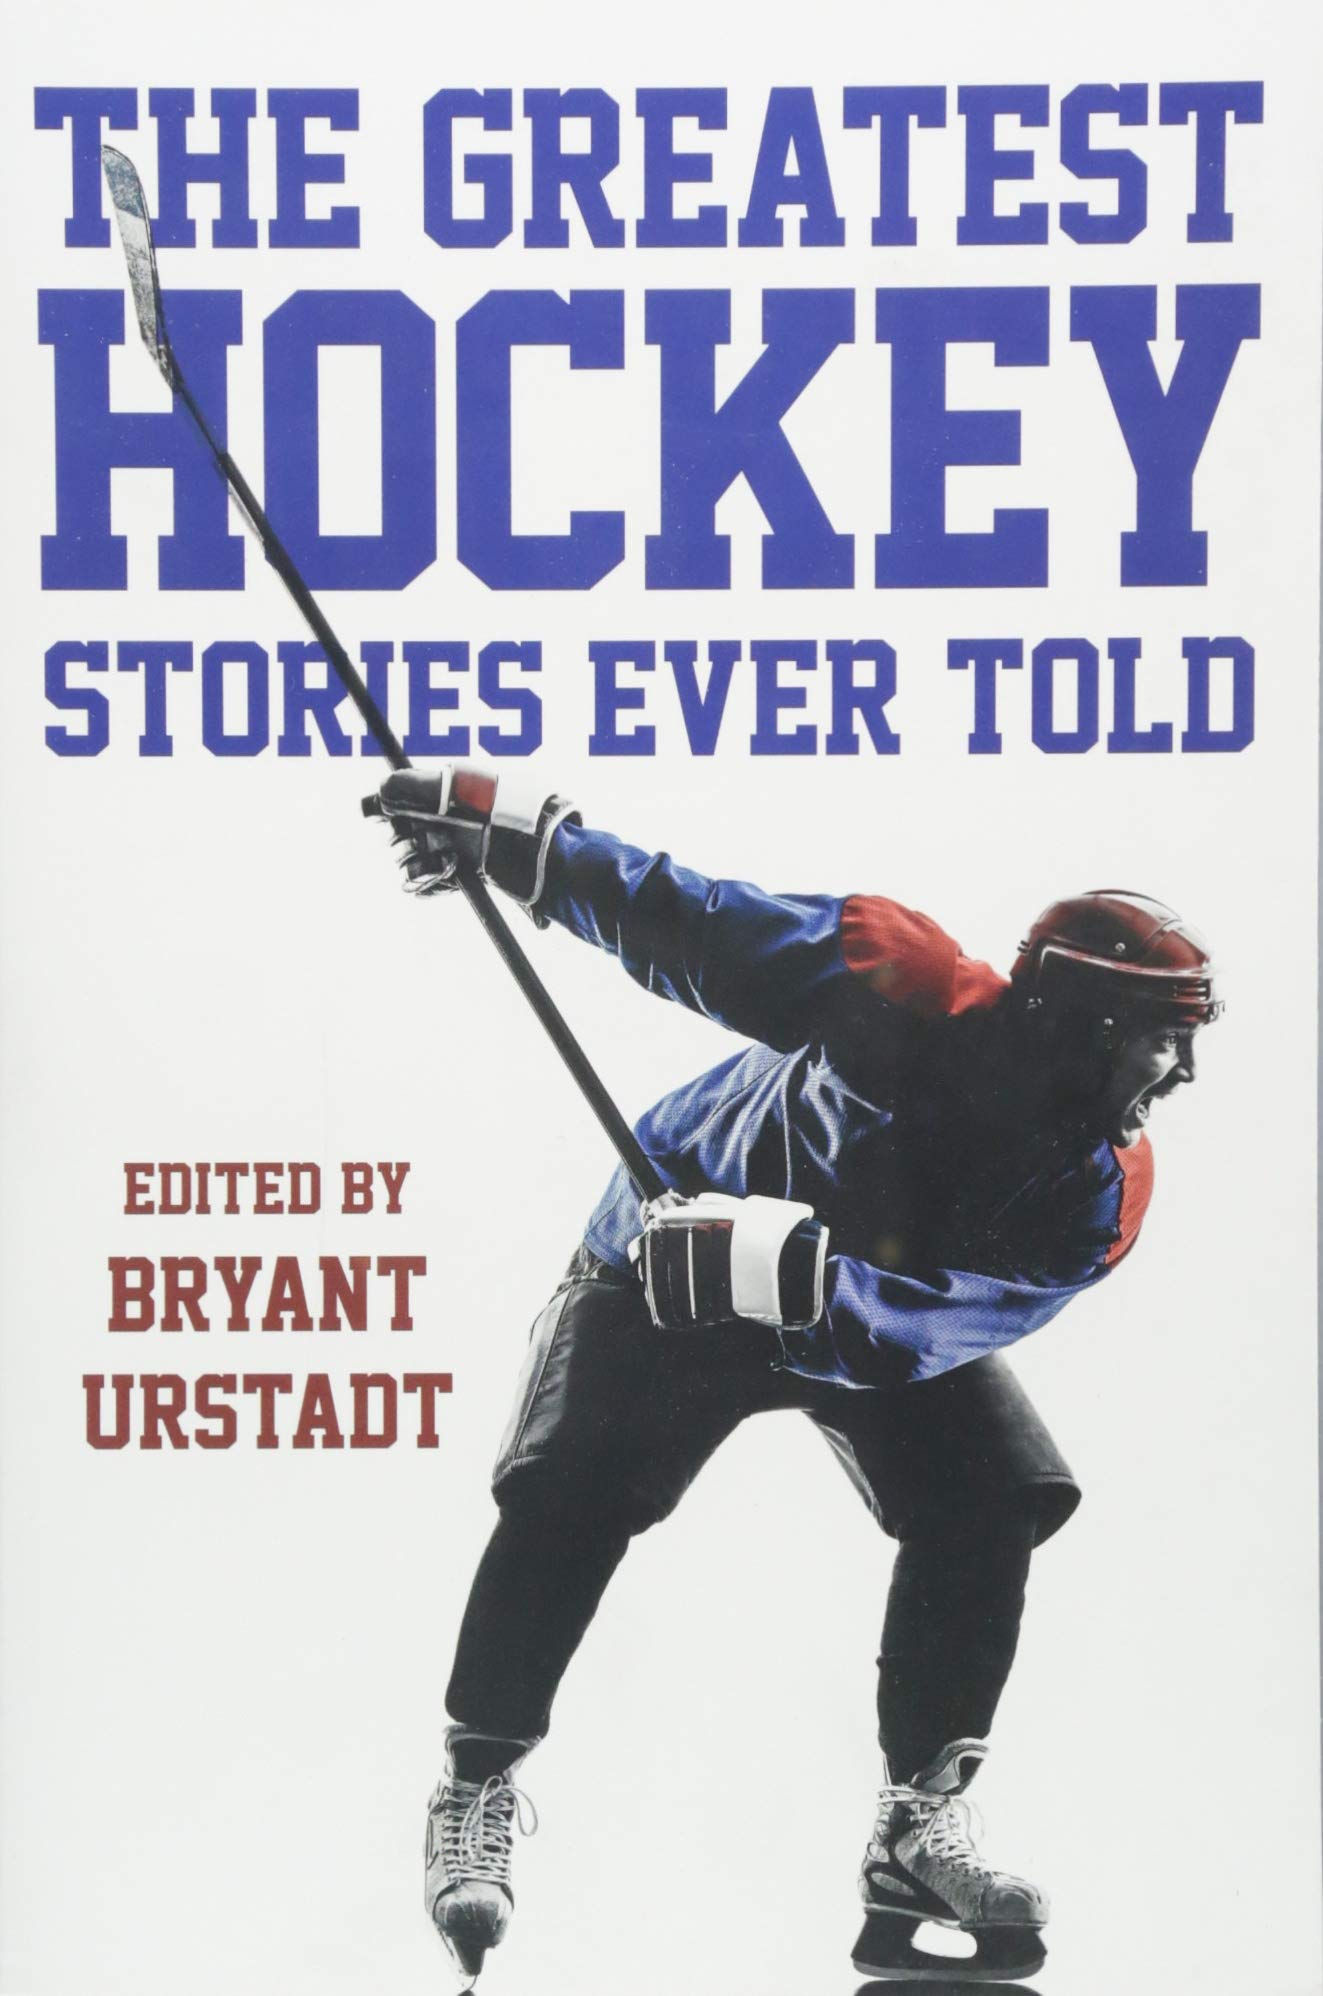 The Greatest Hockey Stories Ever Told: The Finest Writers On Ice Paperback – September 1, 2018 Bryant Urstadt Lyons Press 1493024574 ESSAY